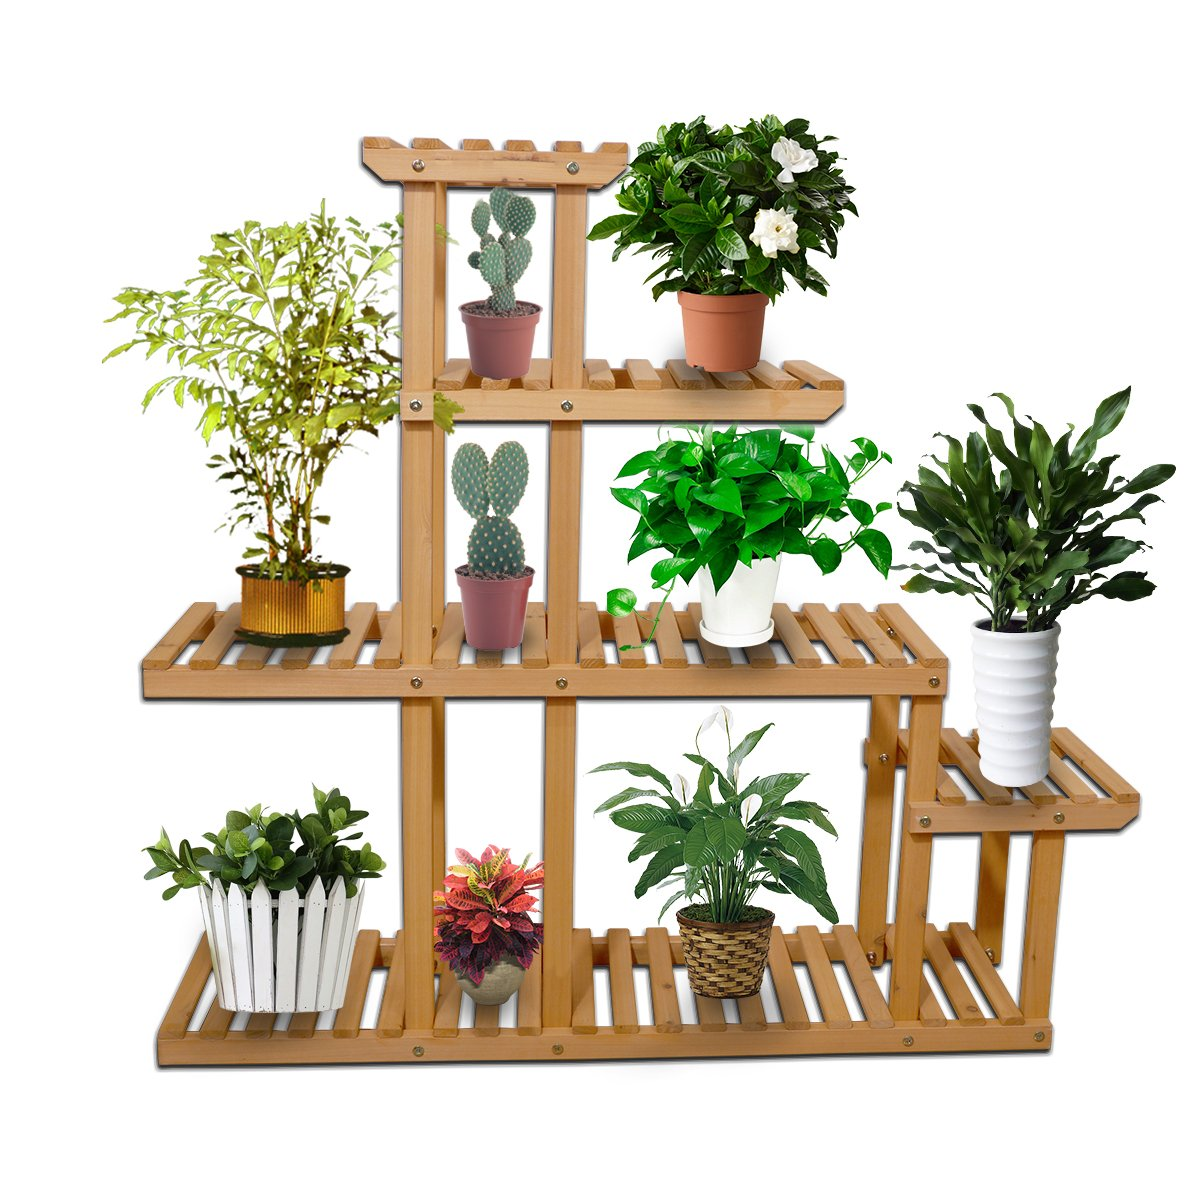 Yardeen Wooden Plant Display Flower Stand 5-Tier Storage Rack Shelving 10 Pot Holder for Garden Patio Corner Indoor&Outdoor Décor